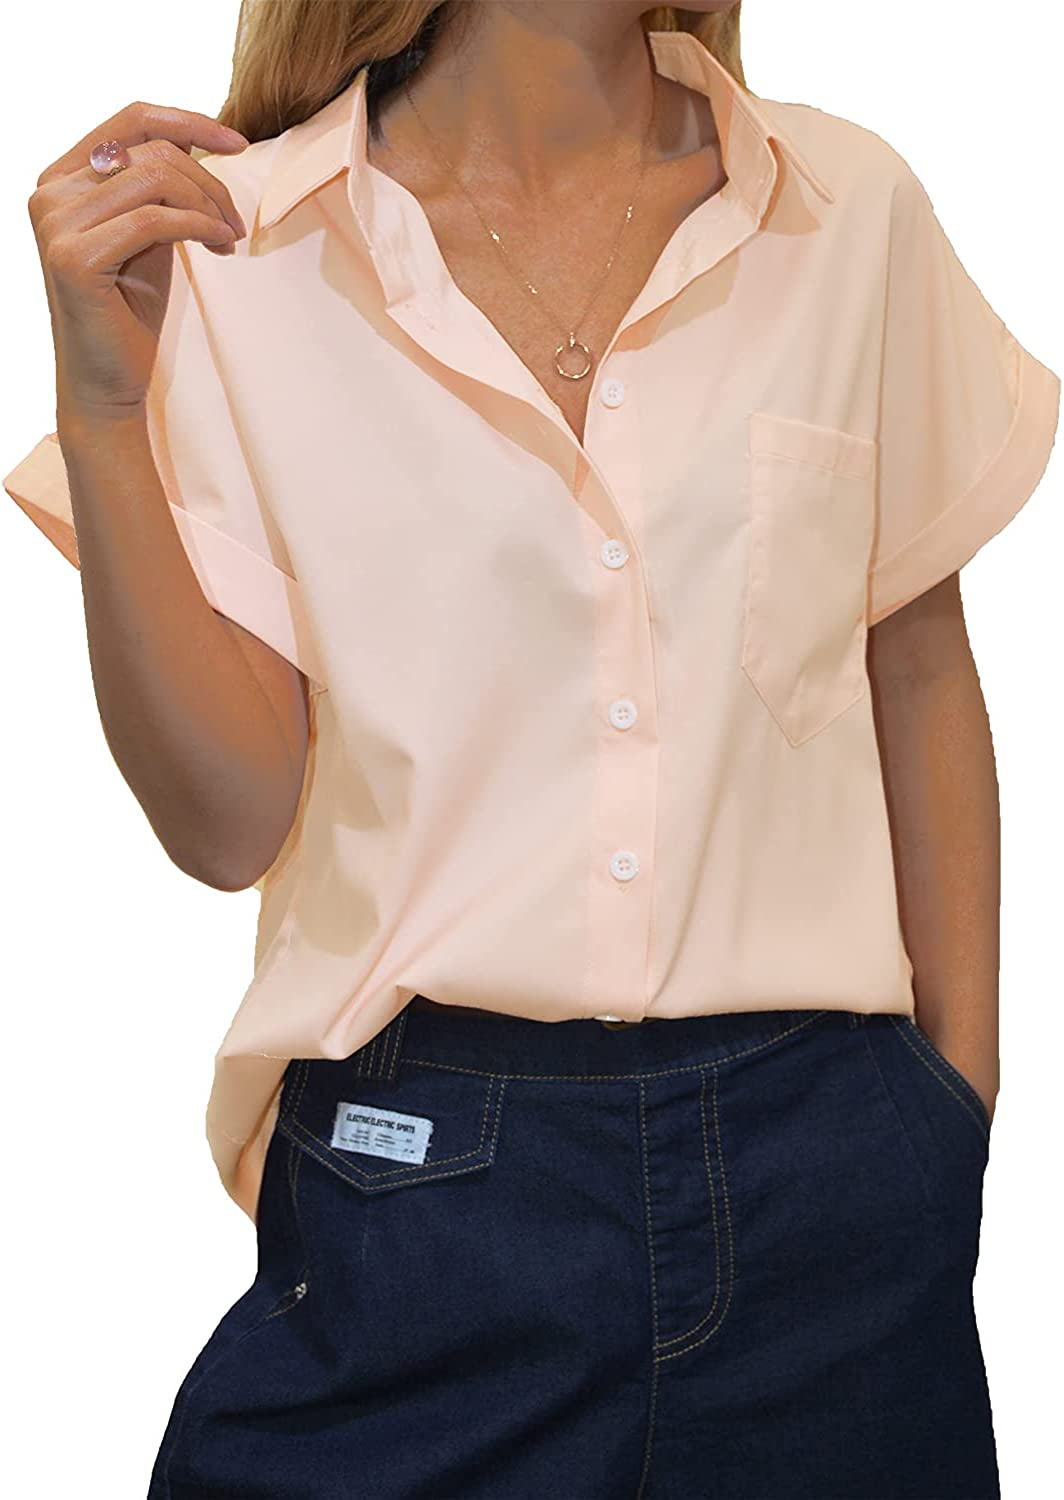 Womens Short Sleeve Shirts V Neck Collared Button Down Shirt Tops with Pocket